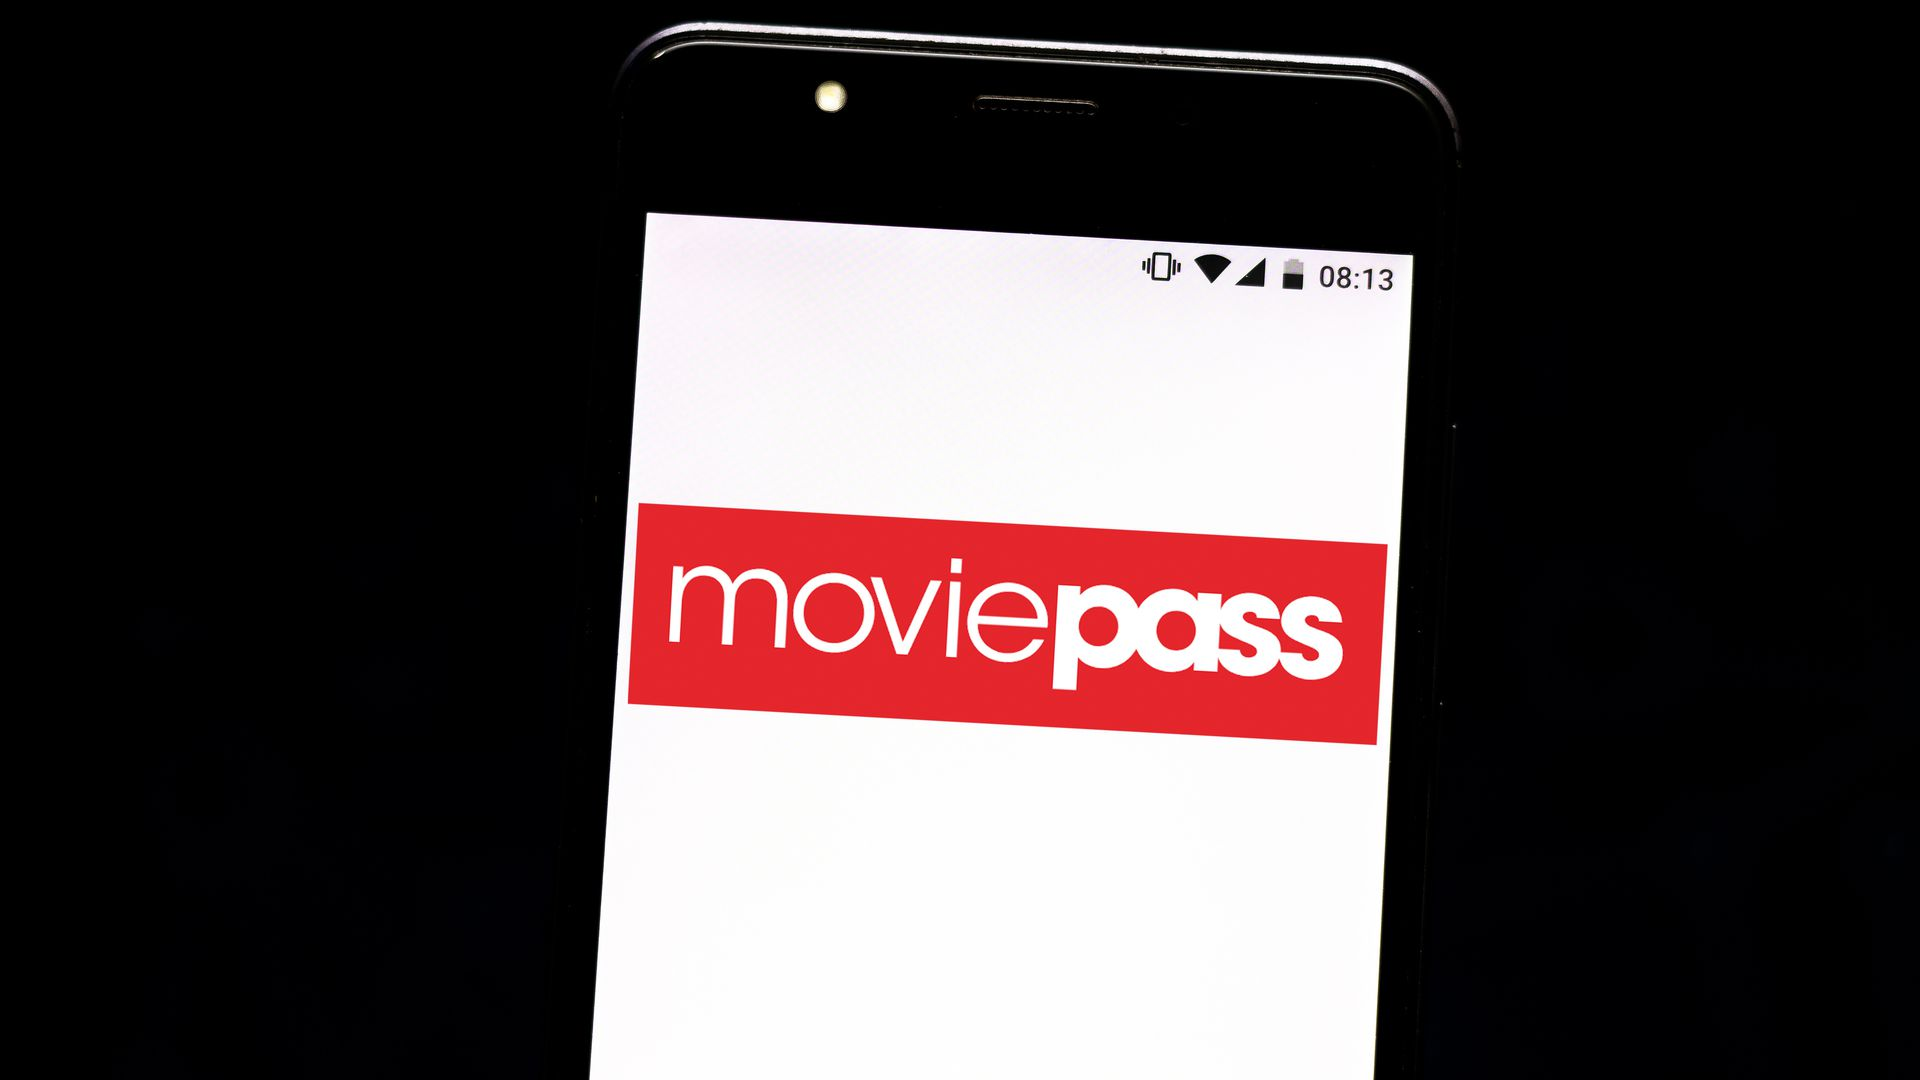 MoviePass service to end on Sept. 14, after financial turmoil